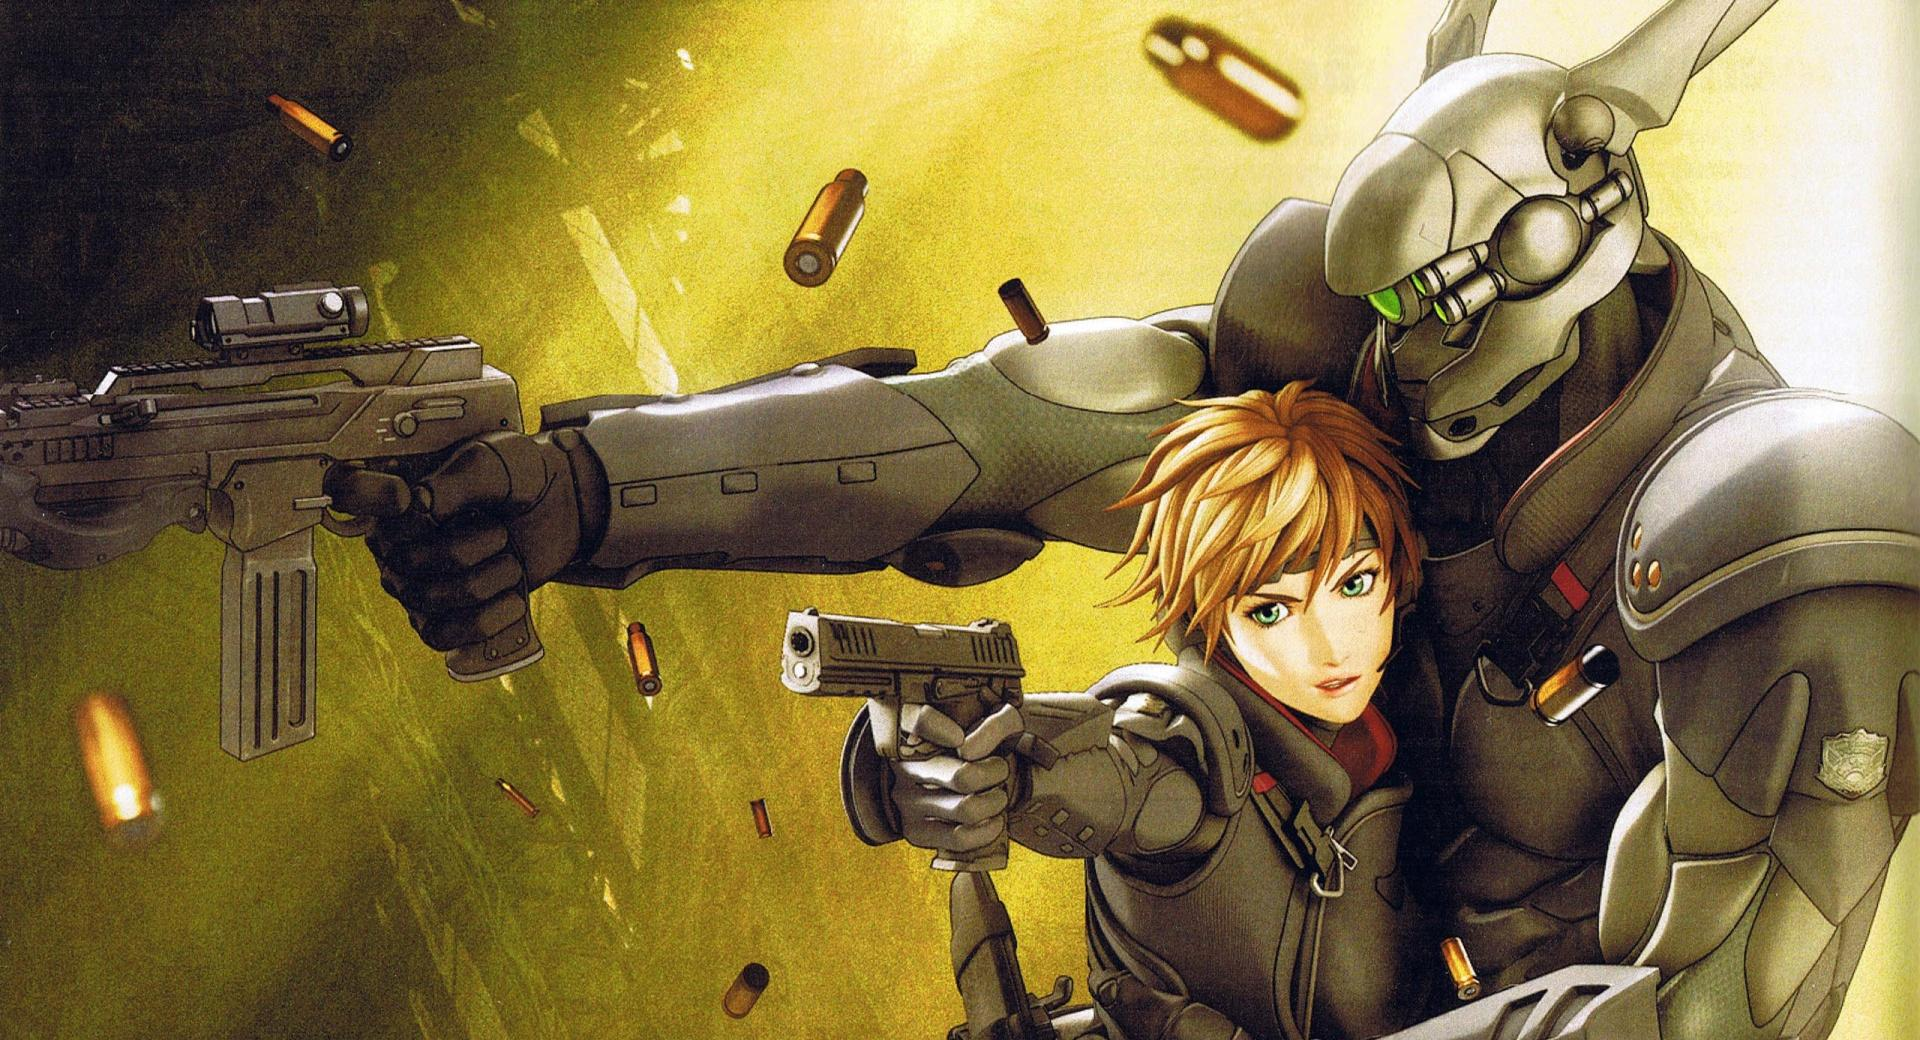 Appleseed Ex Machina wallpapers HD quality